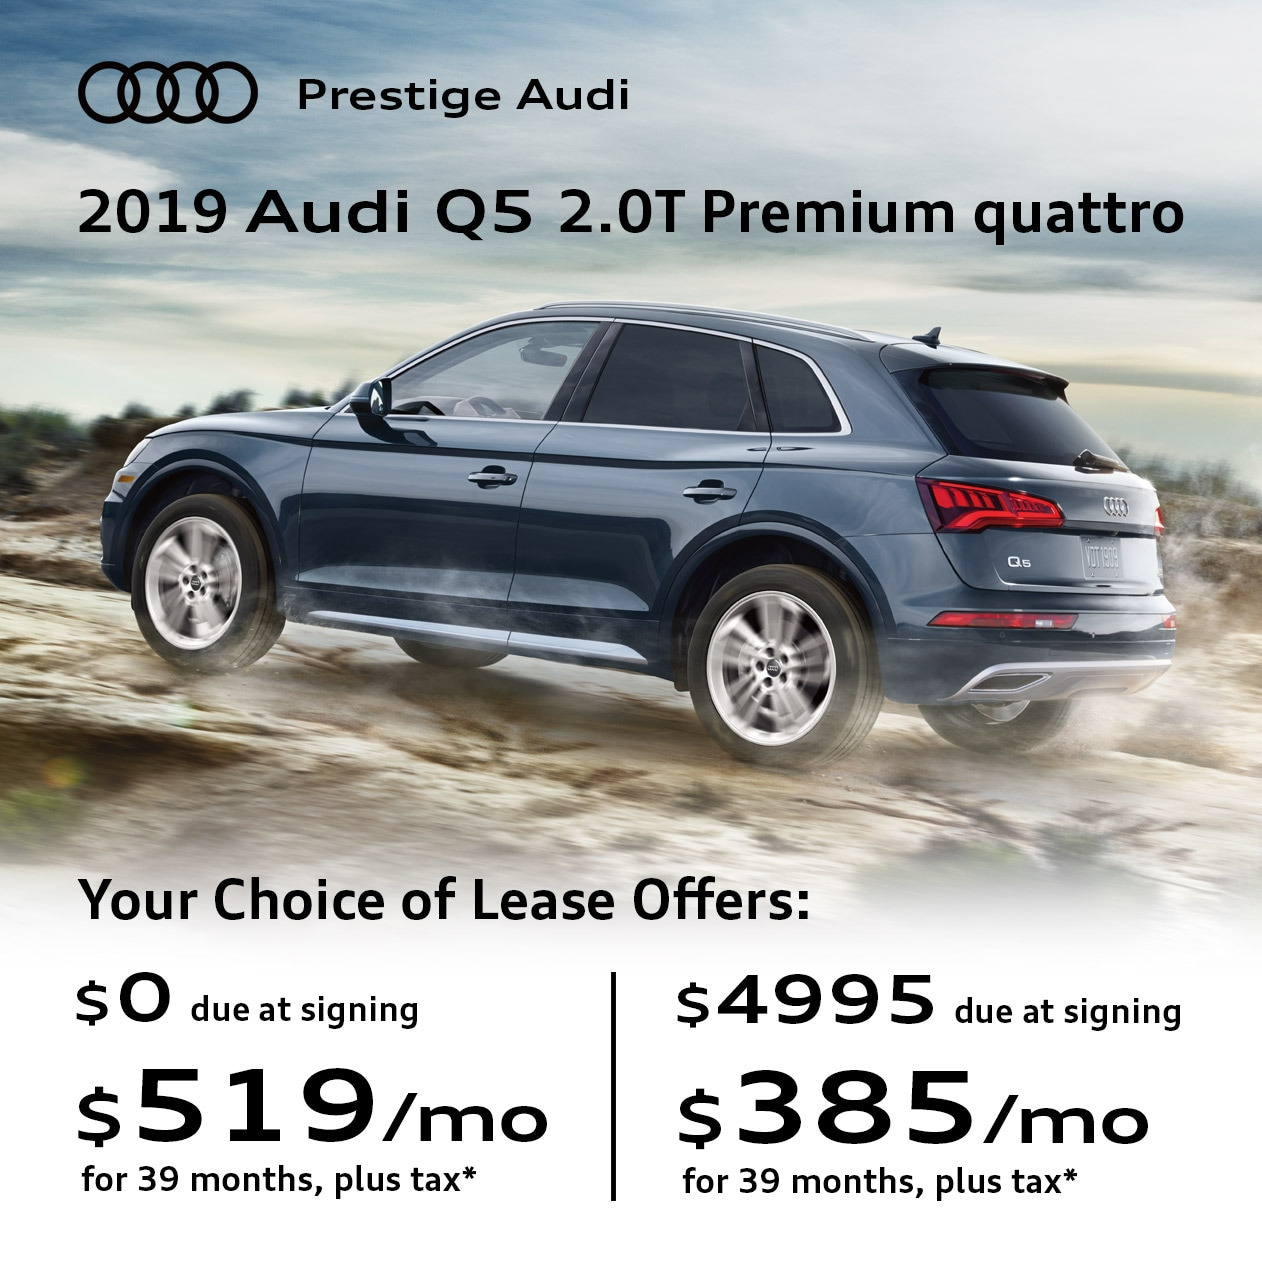 2019 Audi Q5 For Sale In Denver, CO